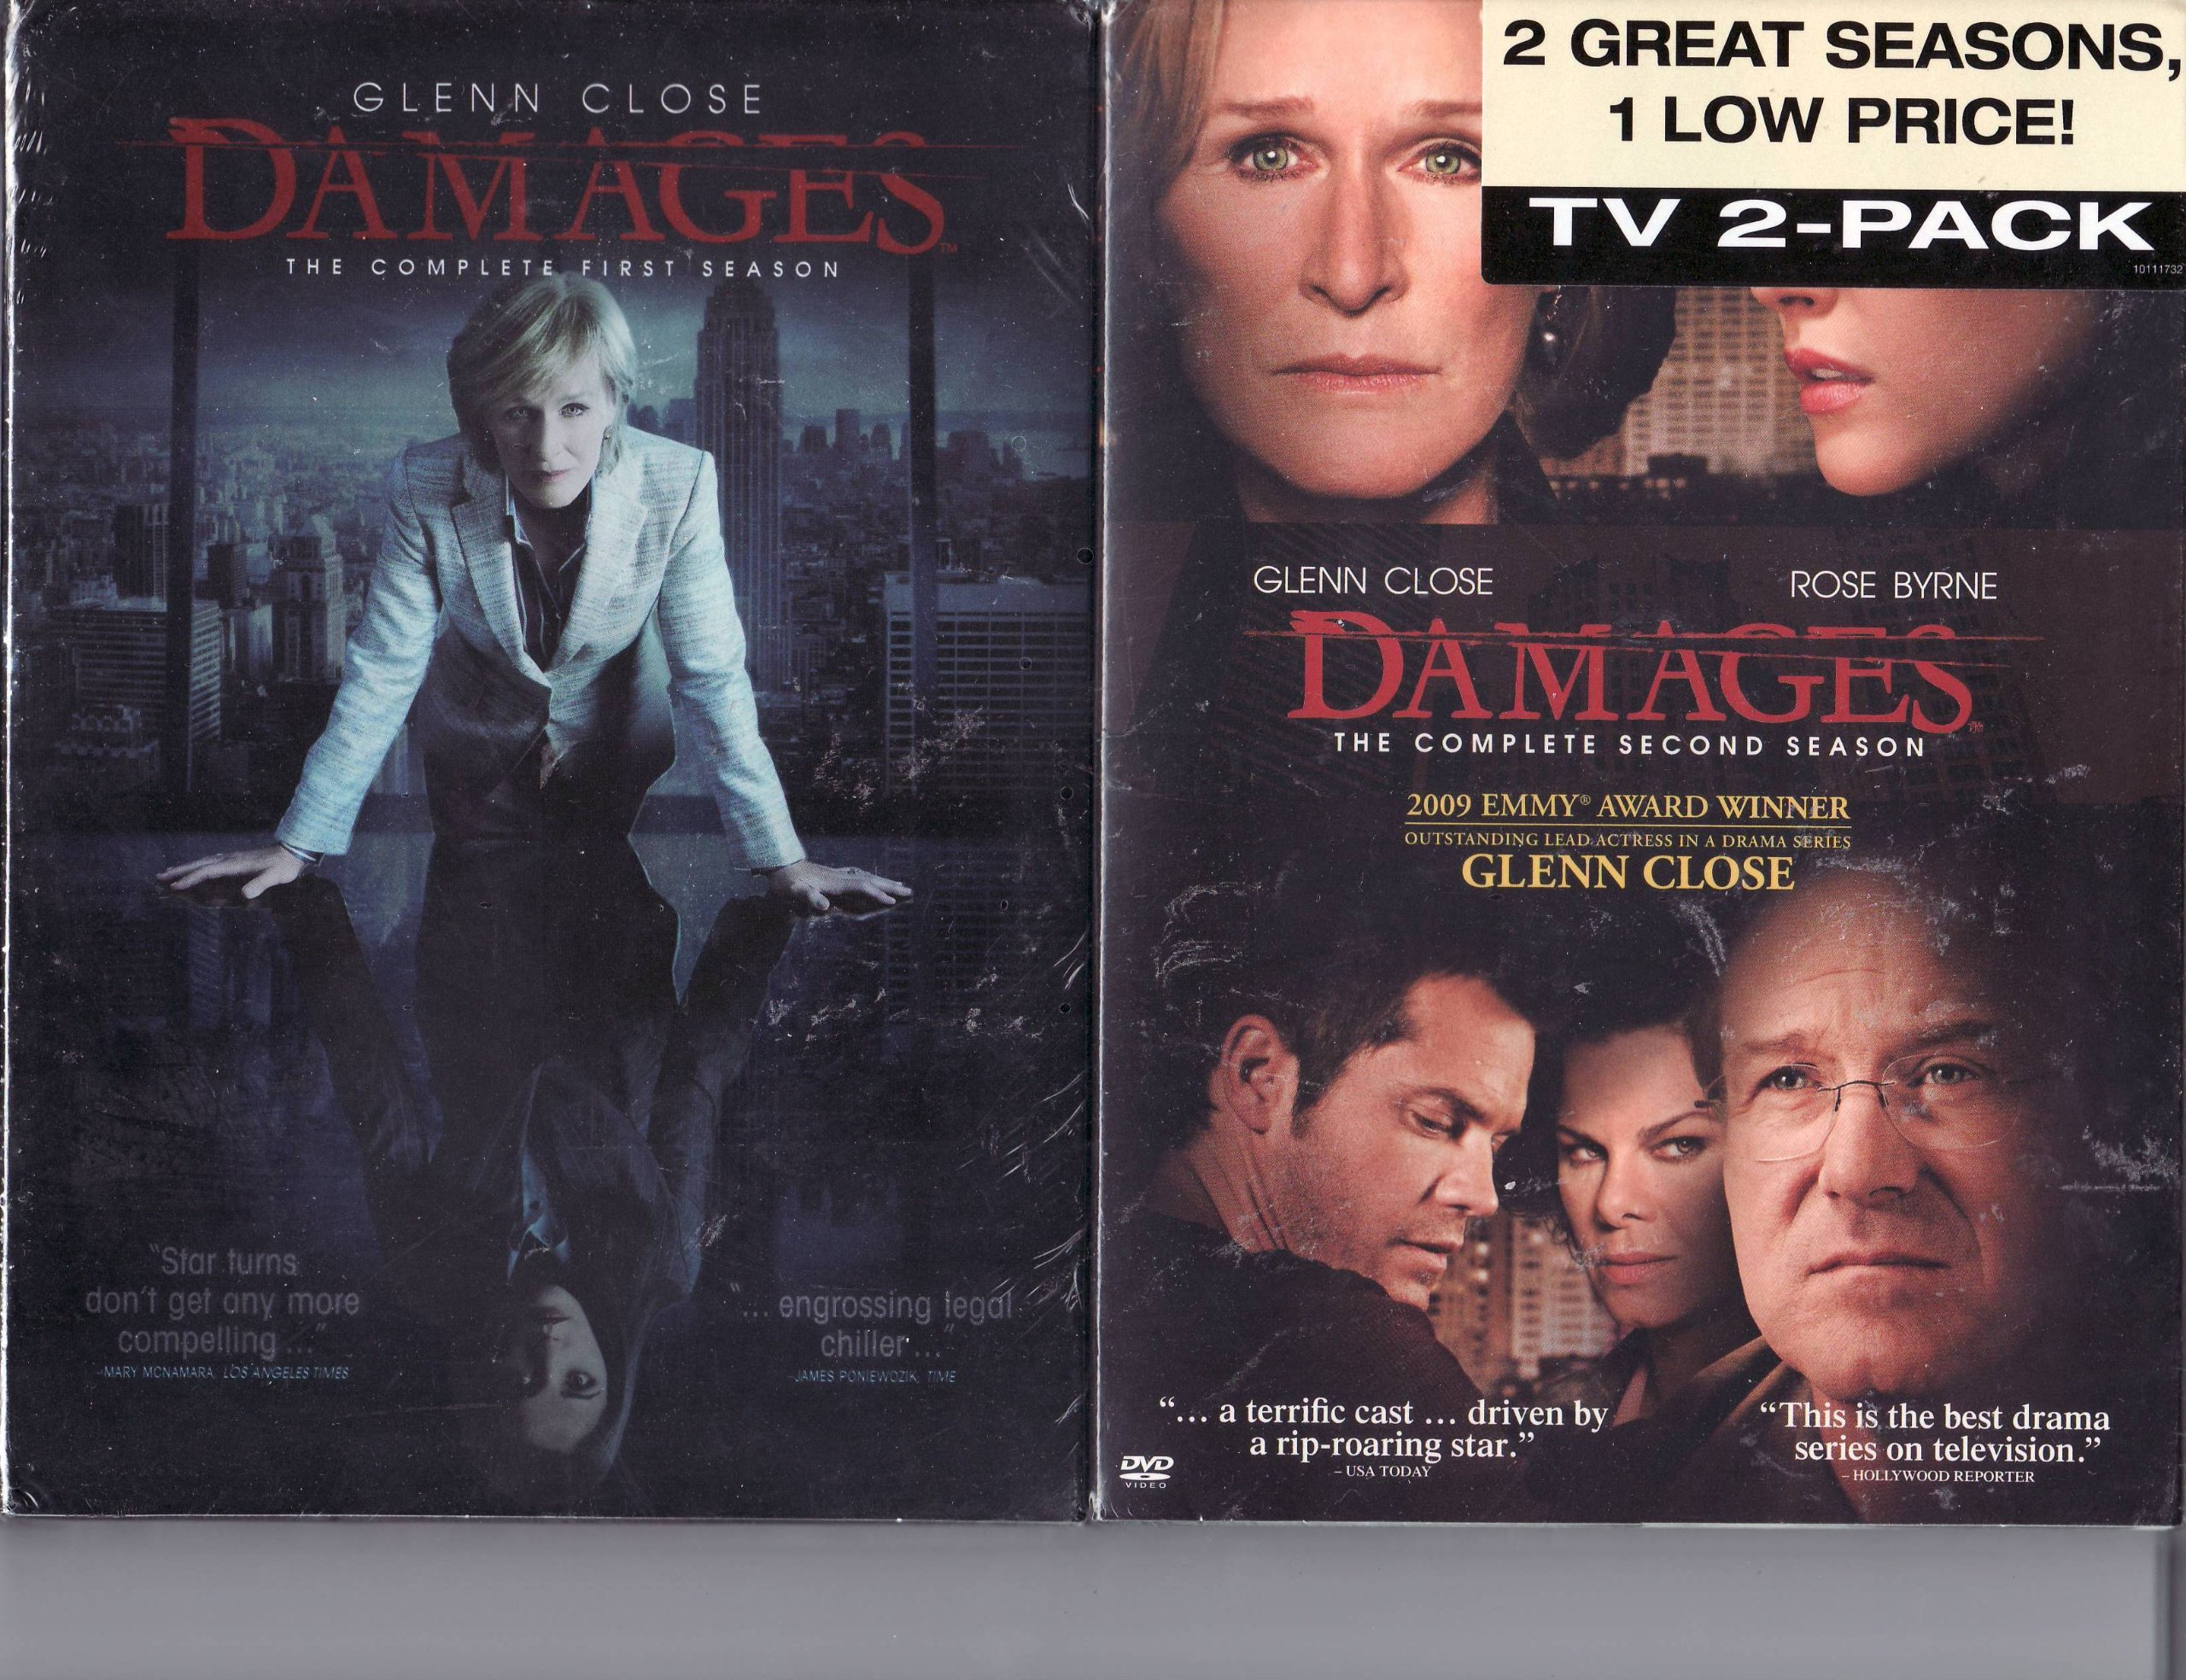 Damages LIMITED EDITION 2 Pack DVD Set - The Complete Season One and Complete Season Two